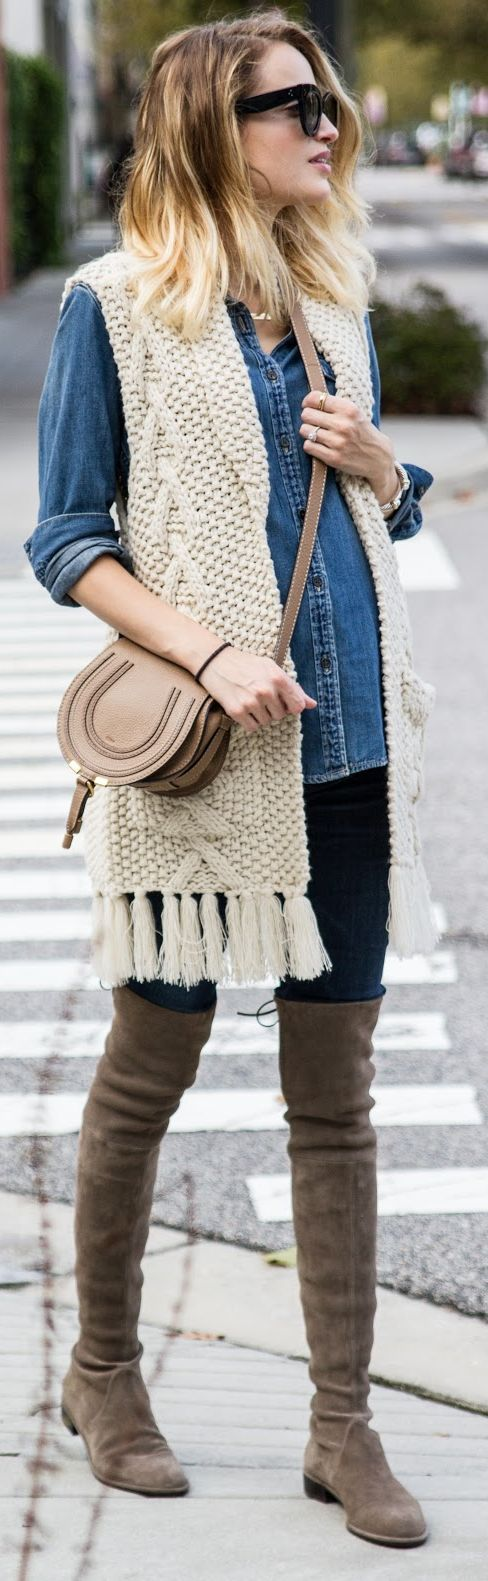 Little Blonde Book Cable Knit Fringed Vest Chambray Shirt Jeans Suede O T K B Fall Inspo: